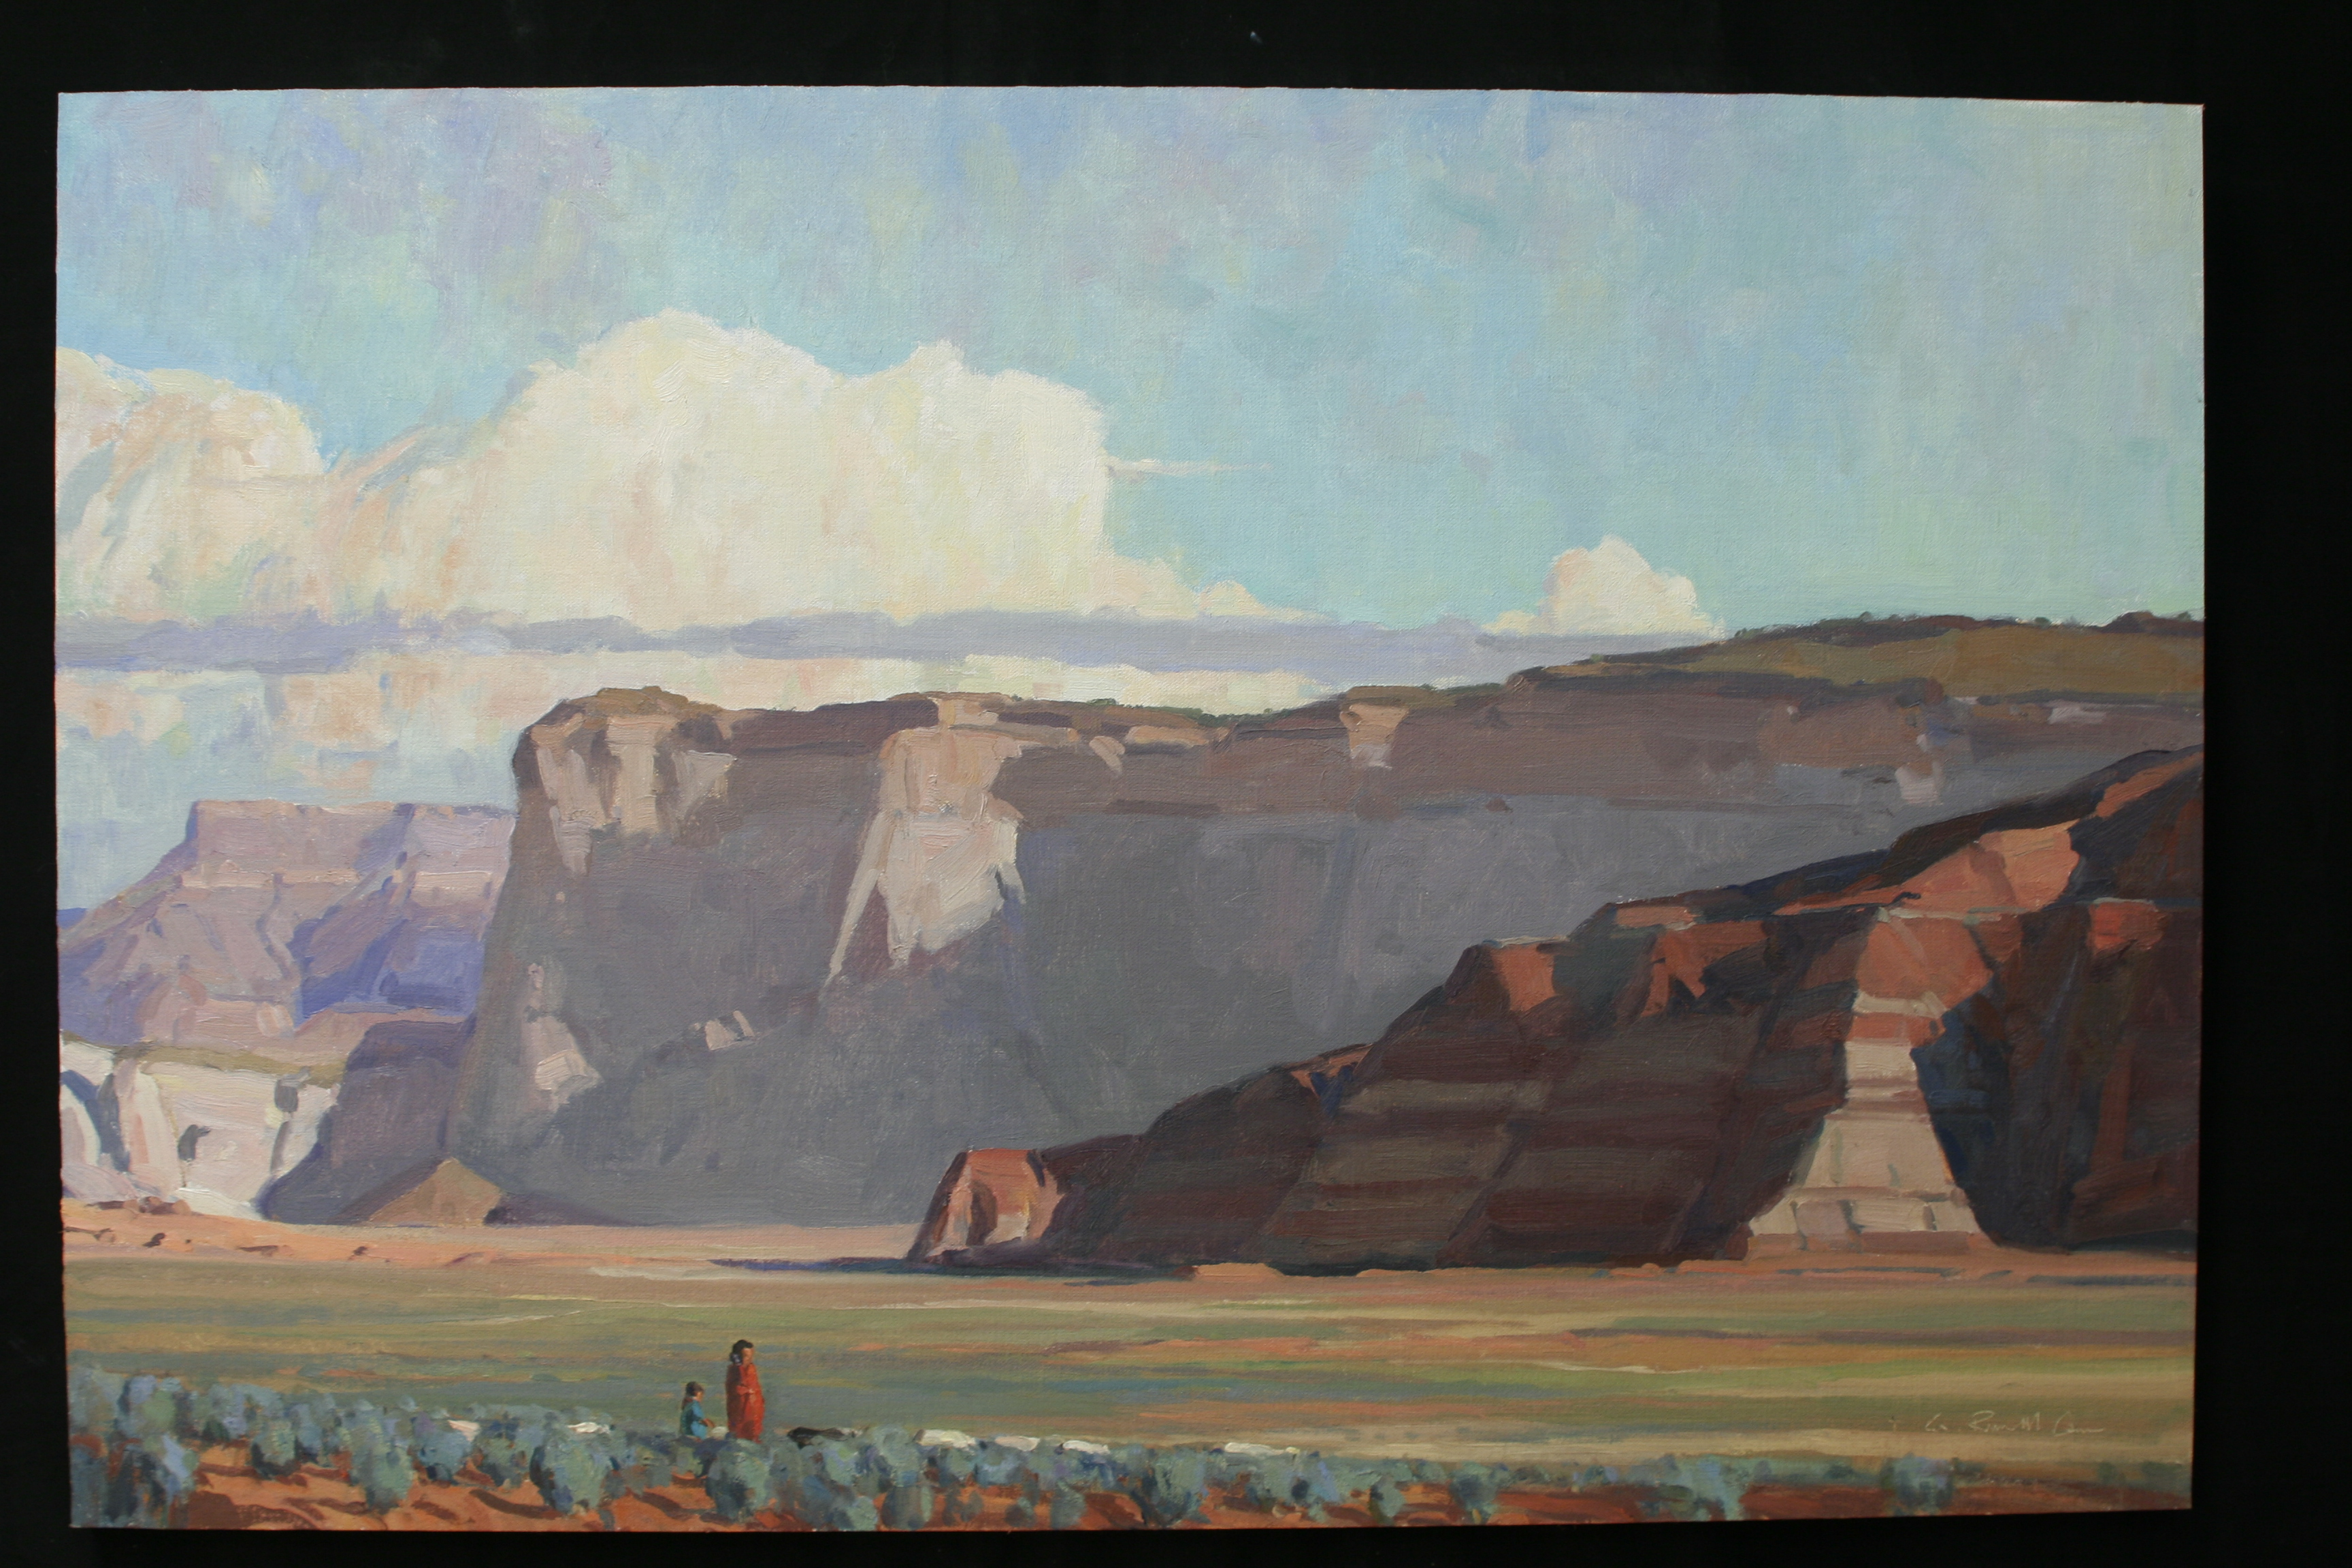 G. Russell Case, Simple Rewards, oil, 20 x 30.